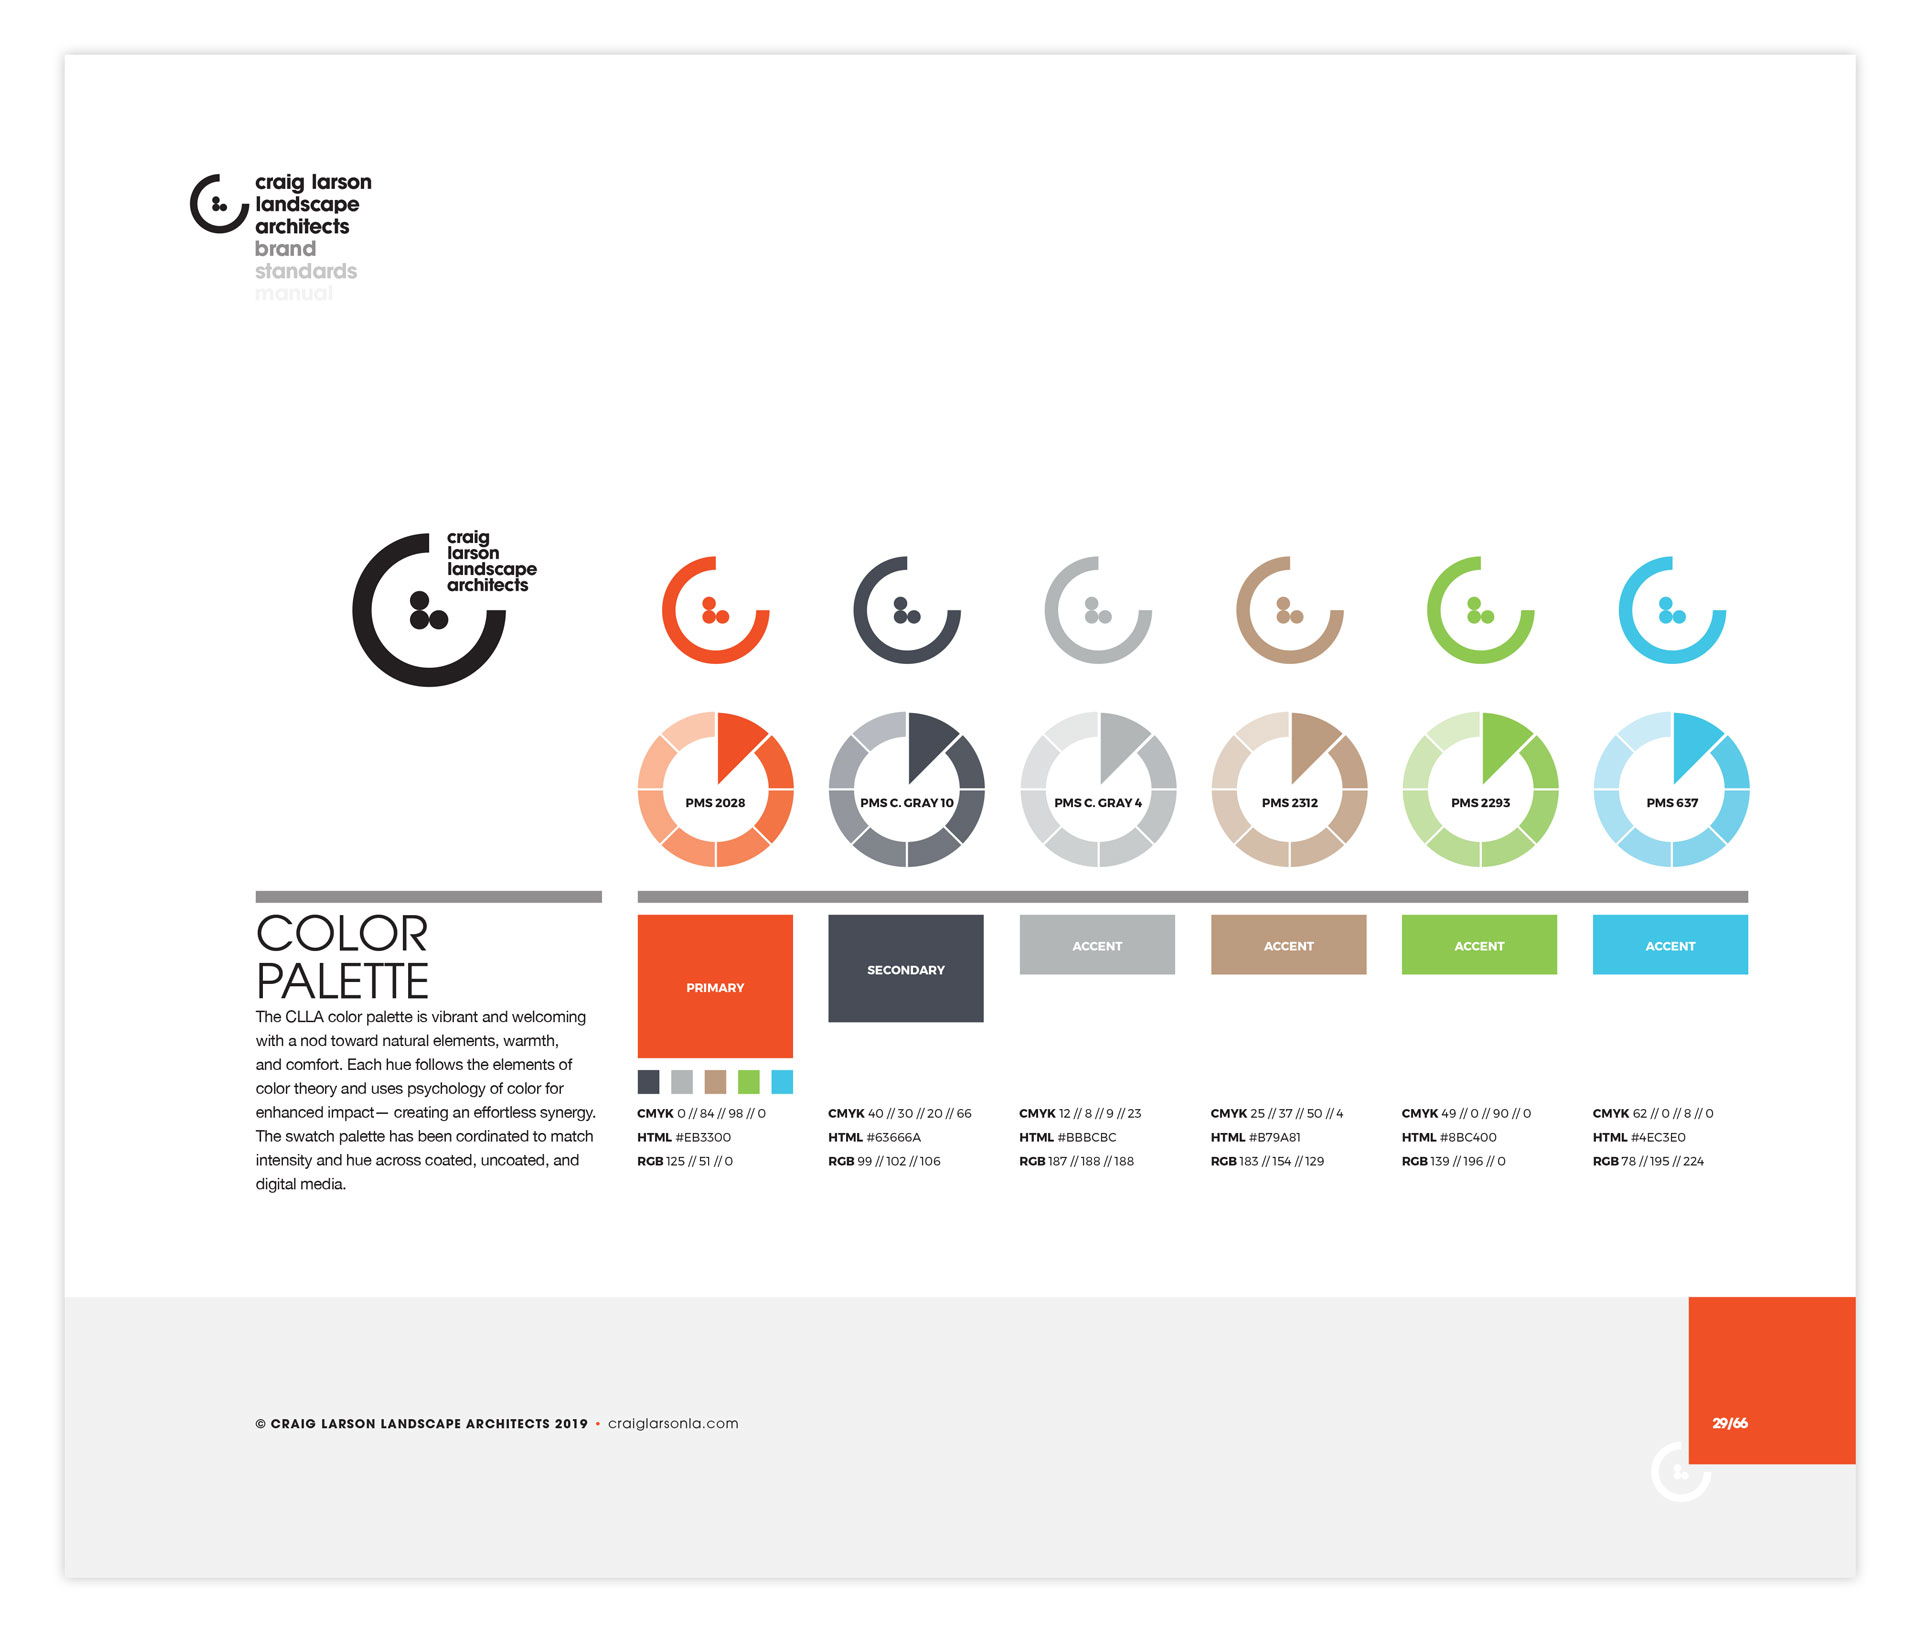 A single page of the brand identity manual displaying the CLLA color scheme